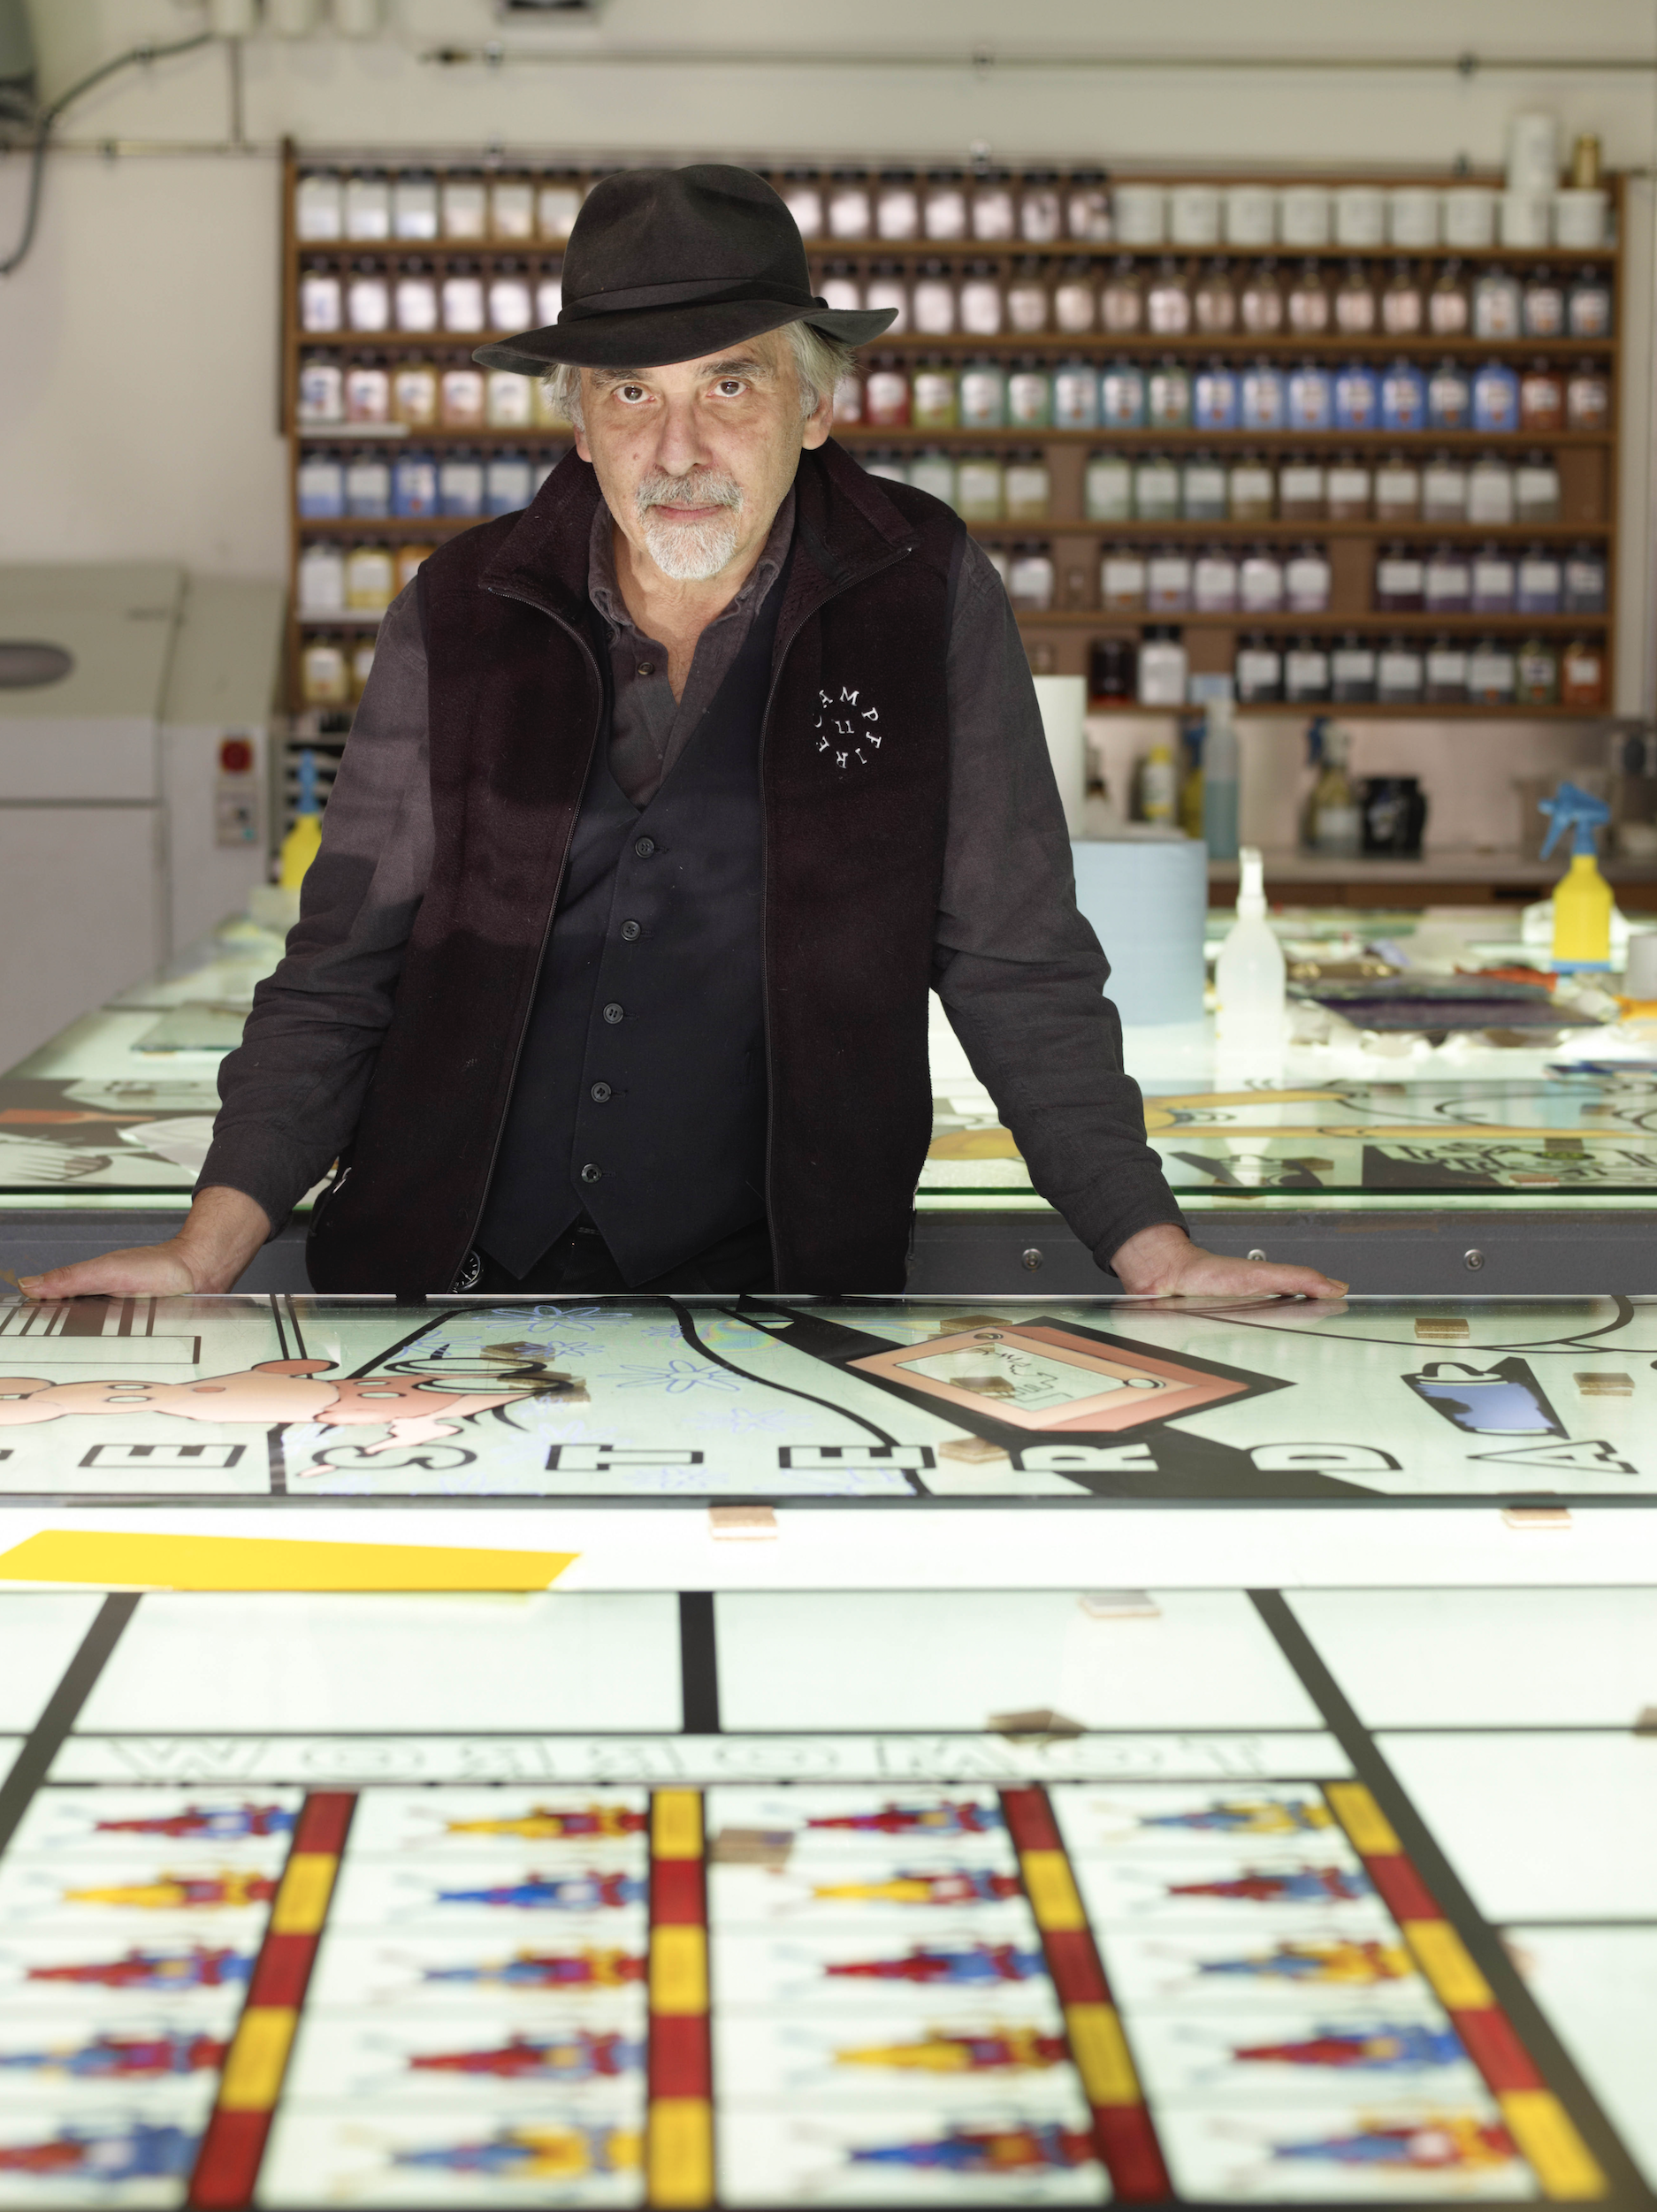 Art Spiegelmann, Cartoonist, standing at a table with a hat